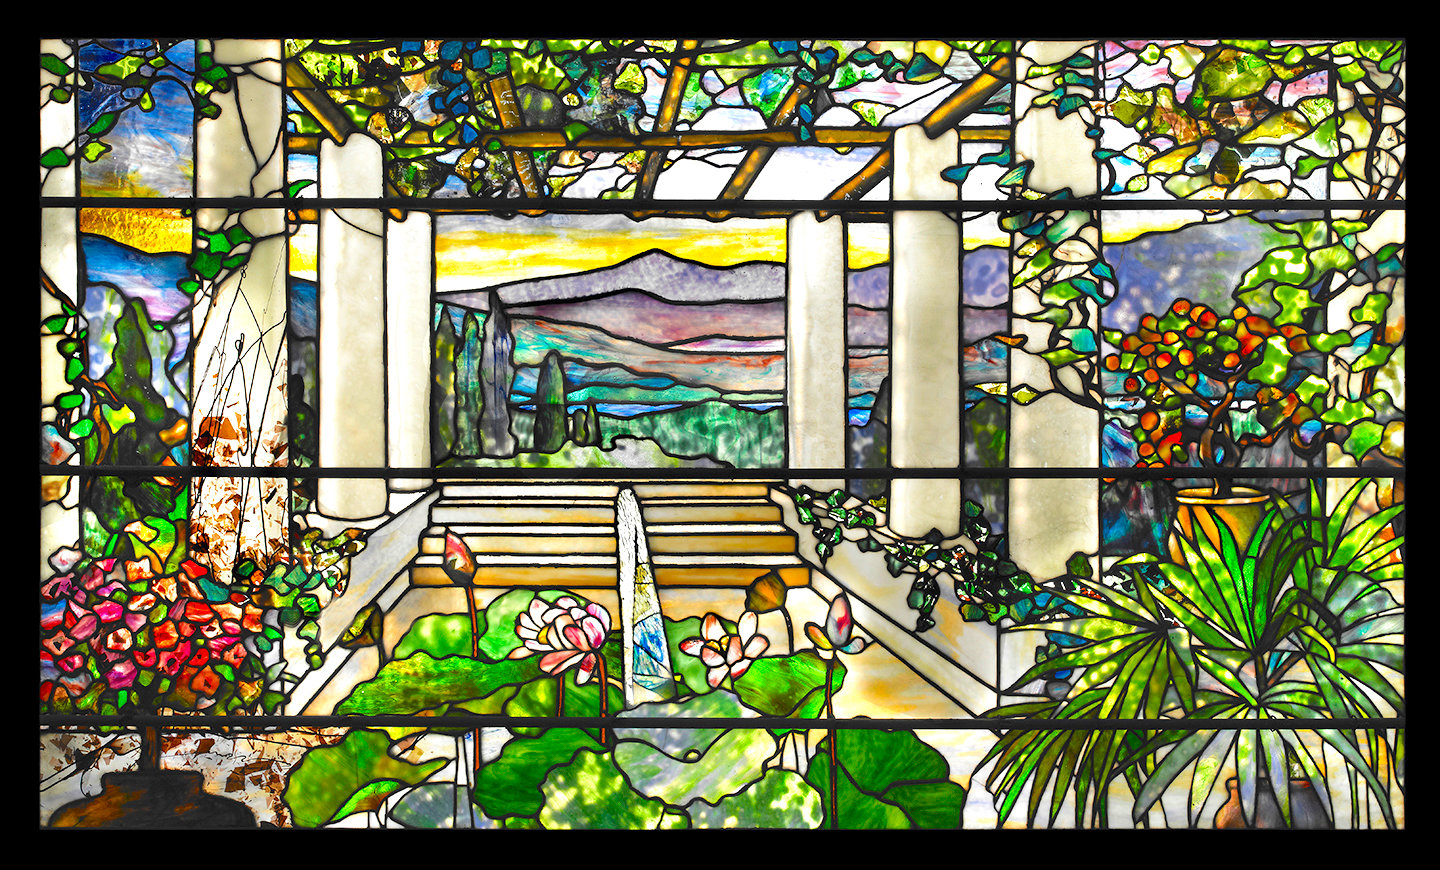 Garden Landscape Window — 1900-1910, leaded glass, Tiffany Studios